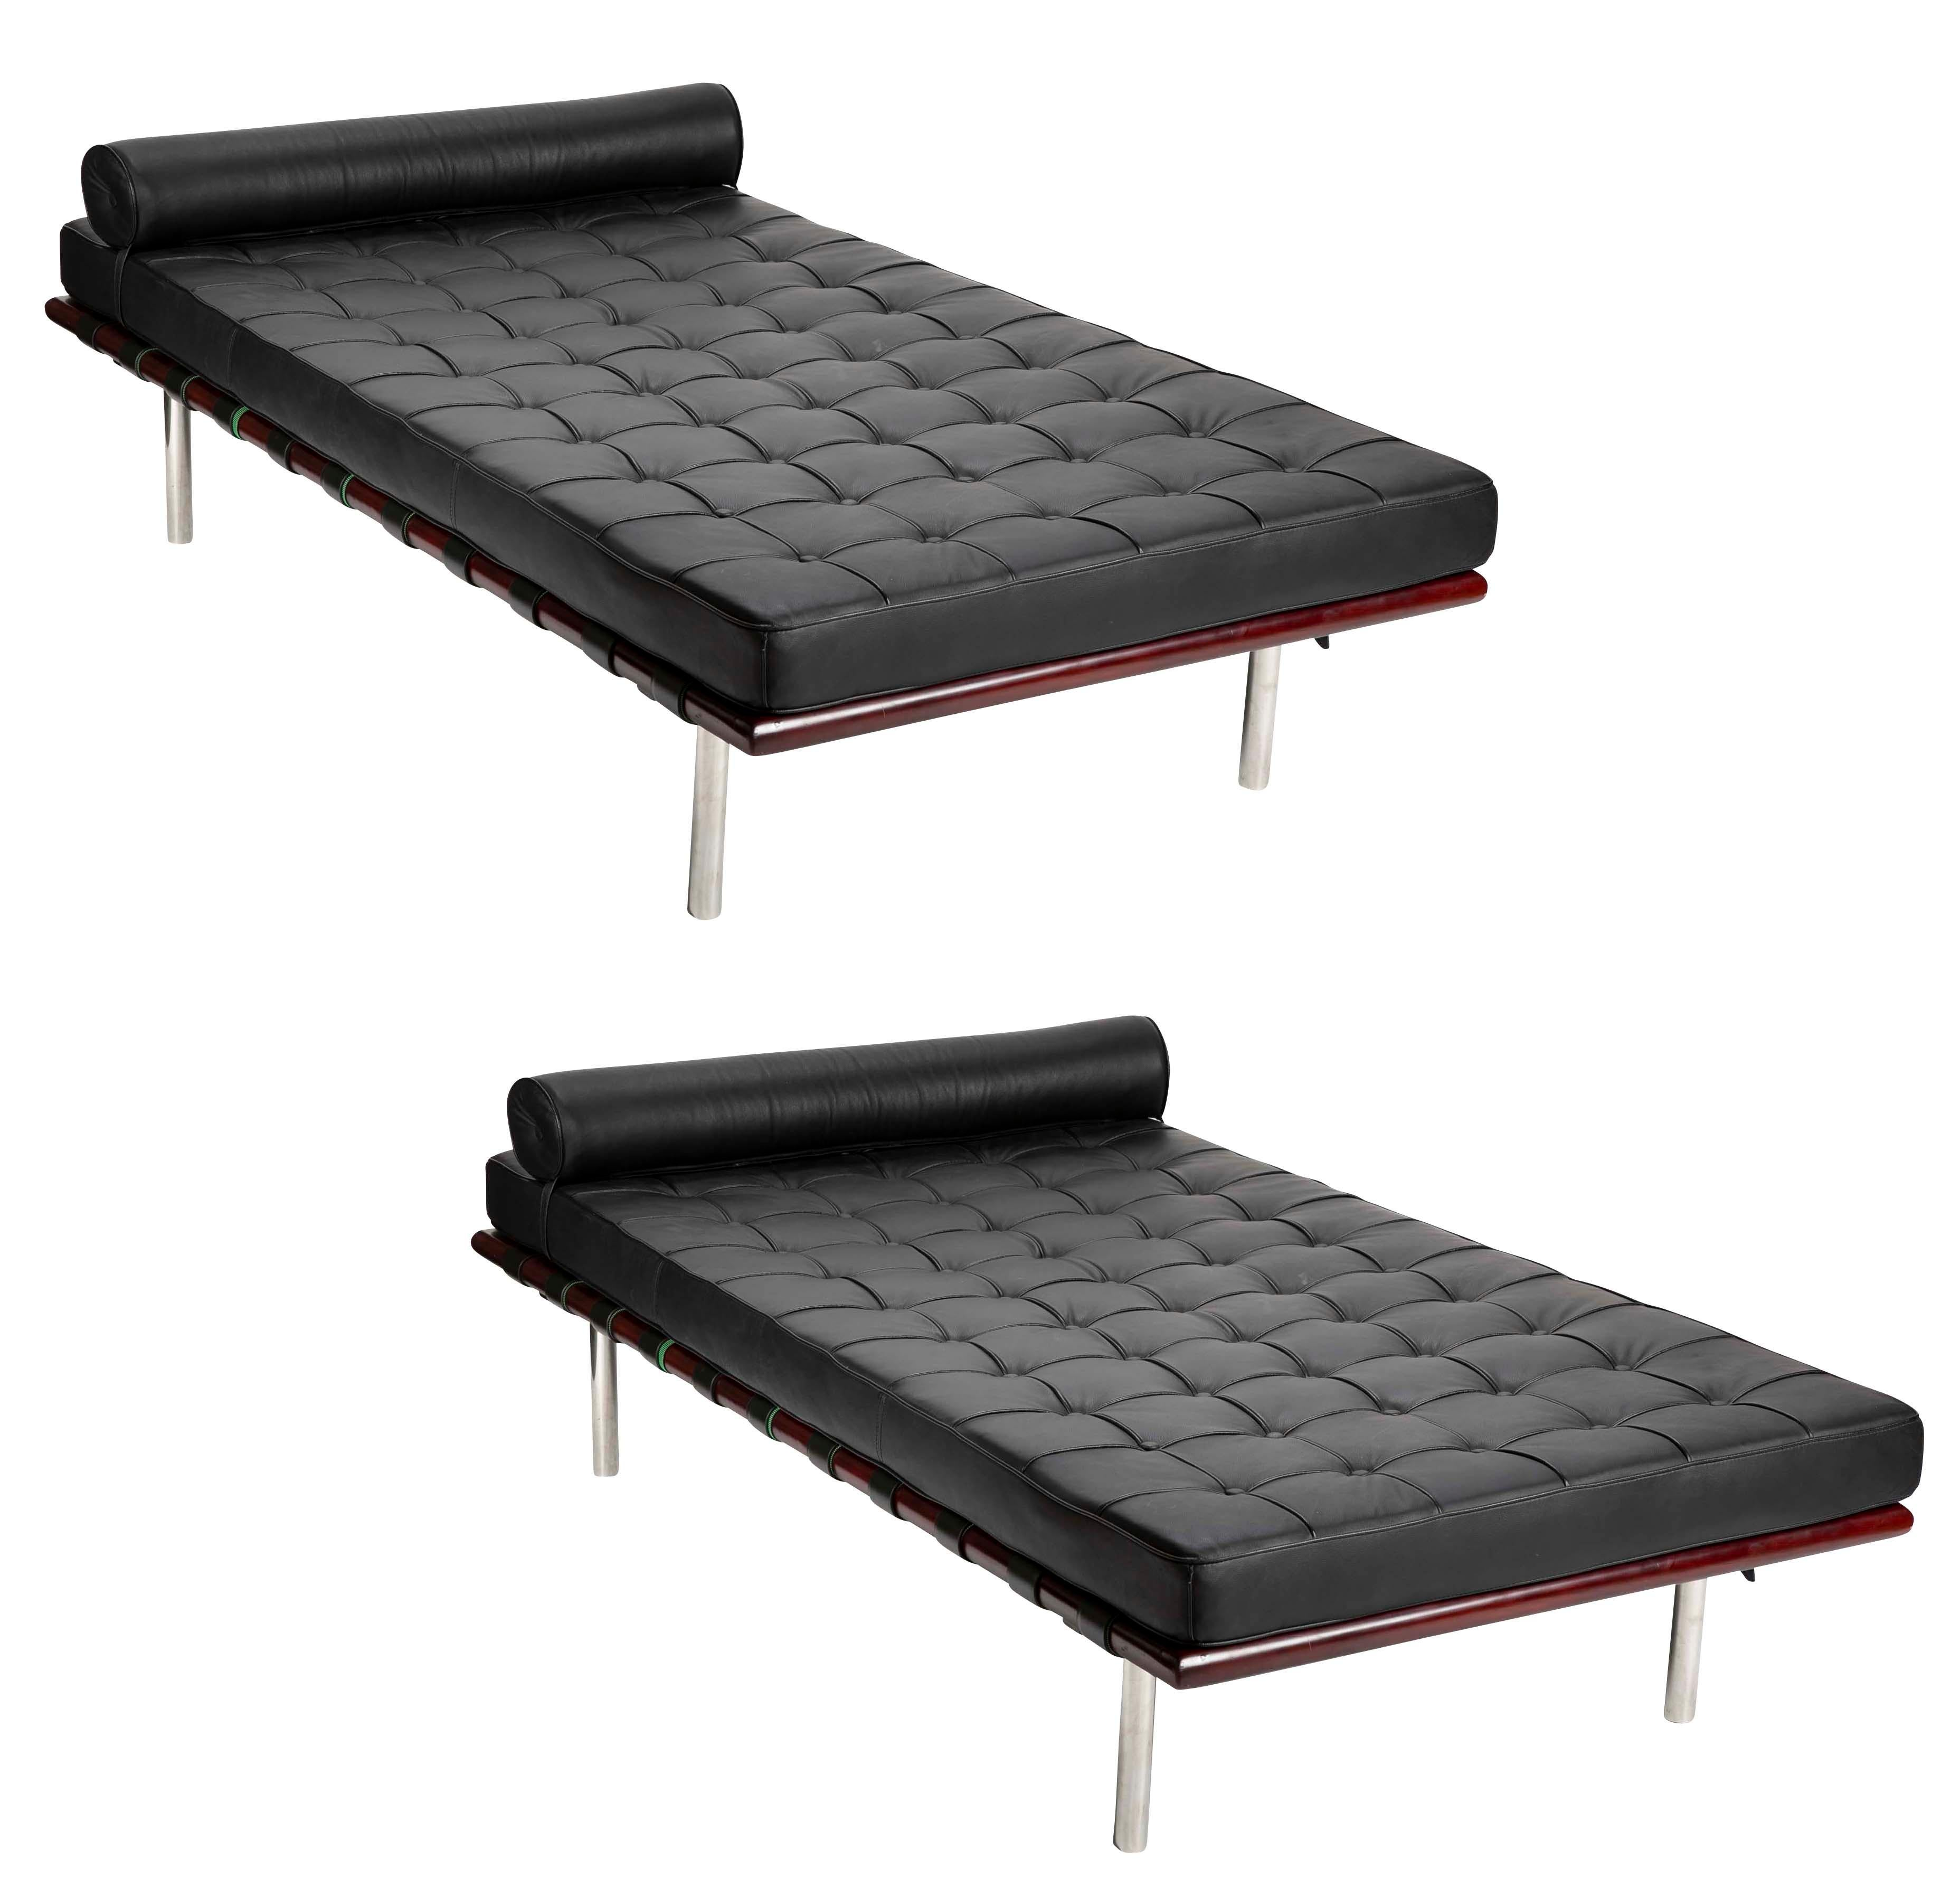 Superieur Pair Of Black Leatherette Chaise Lounges In The Manner Of Mies Van Der Rohe  For Sale